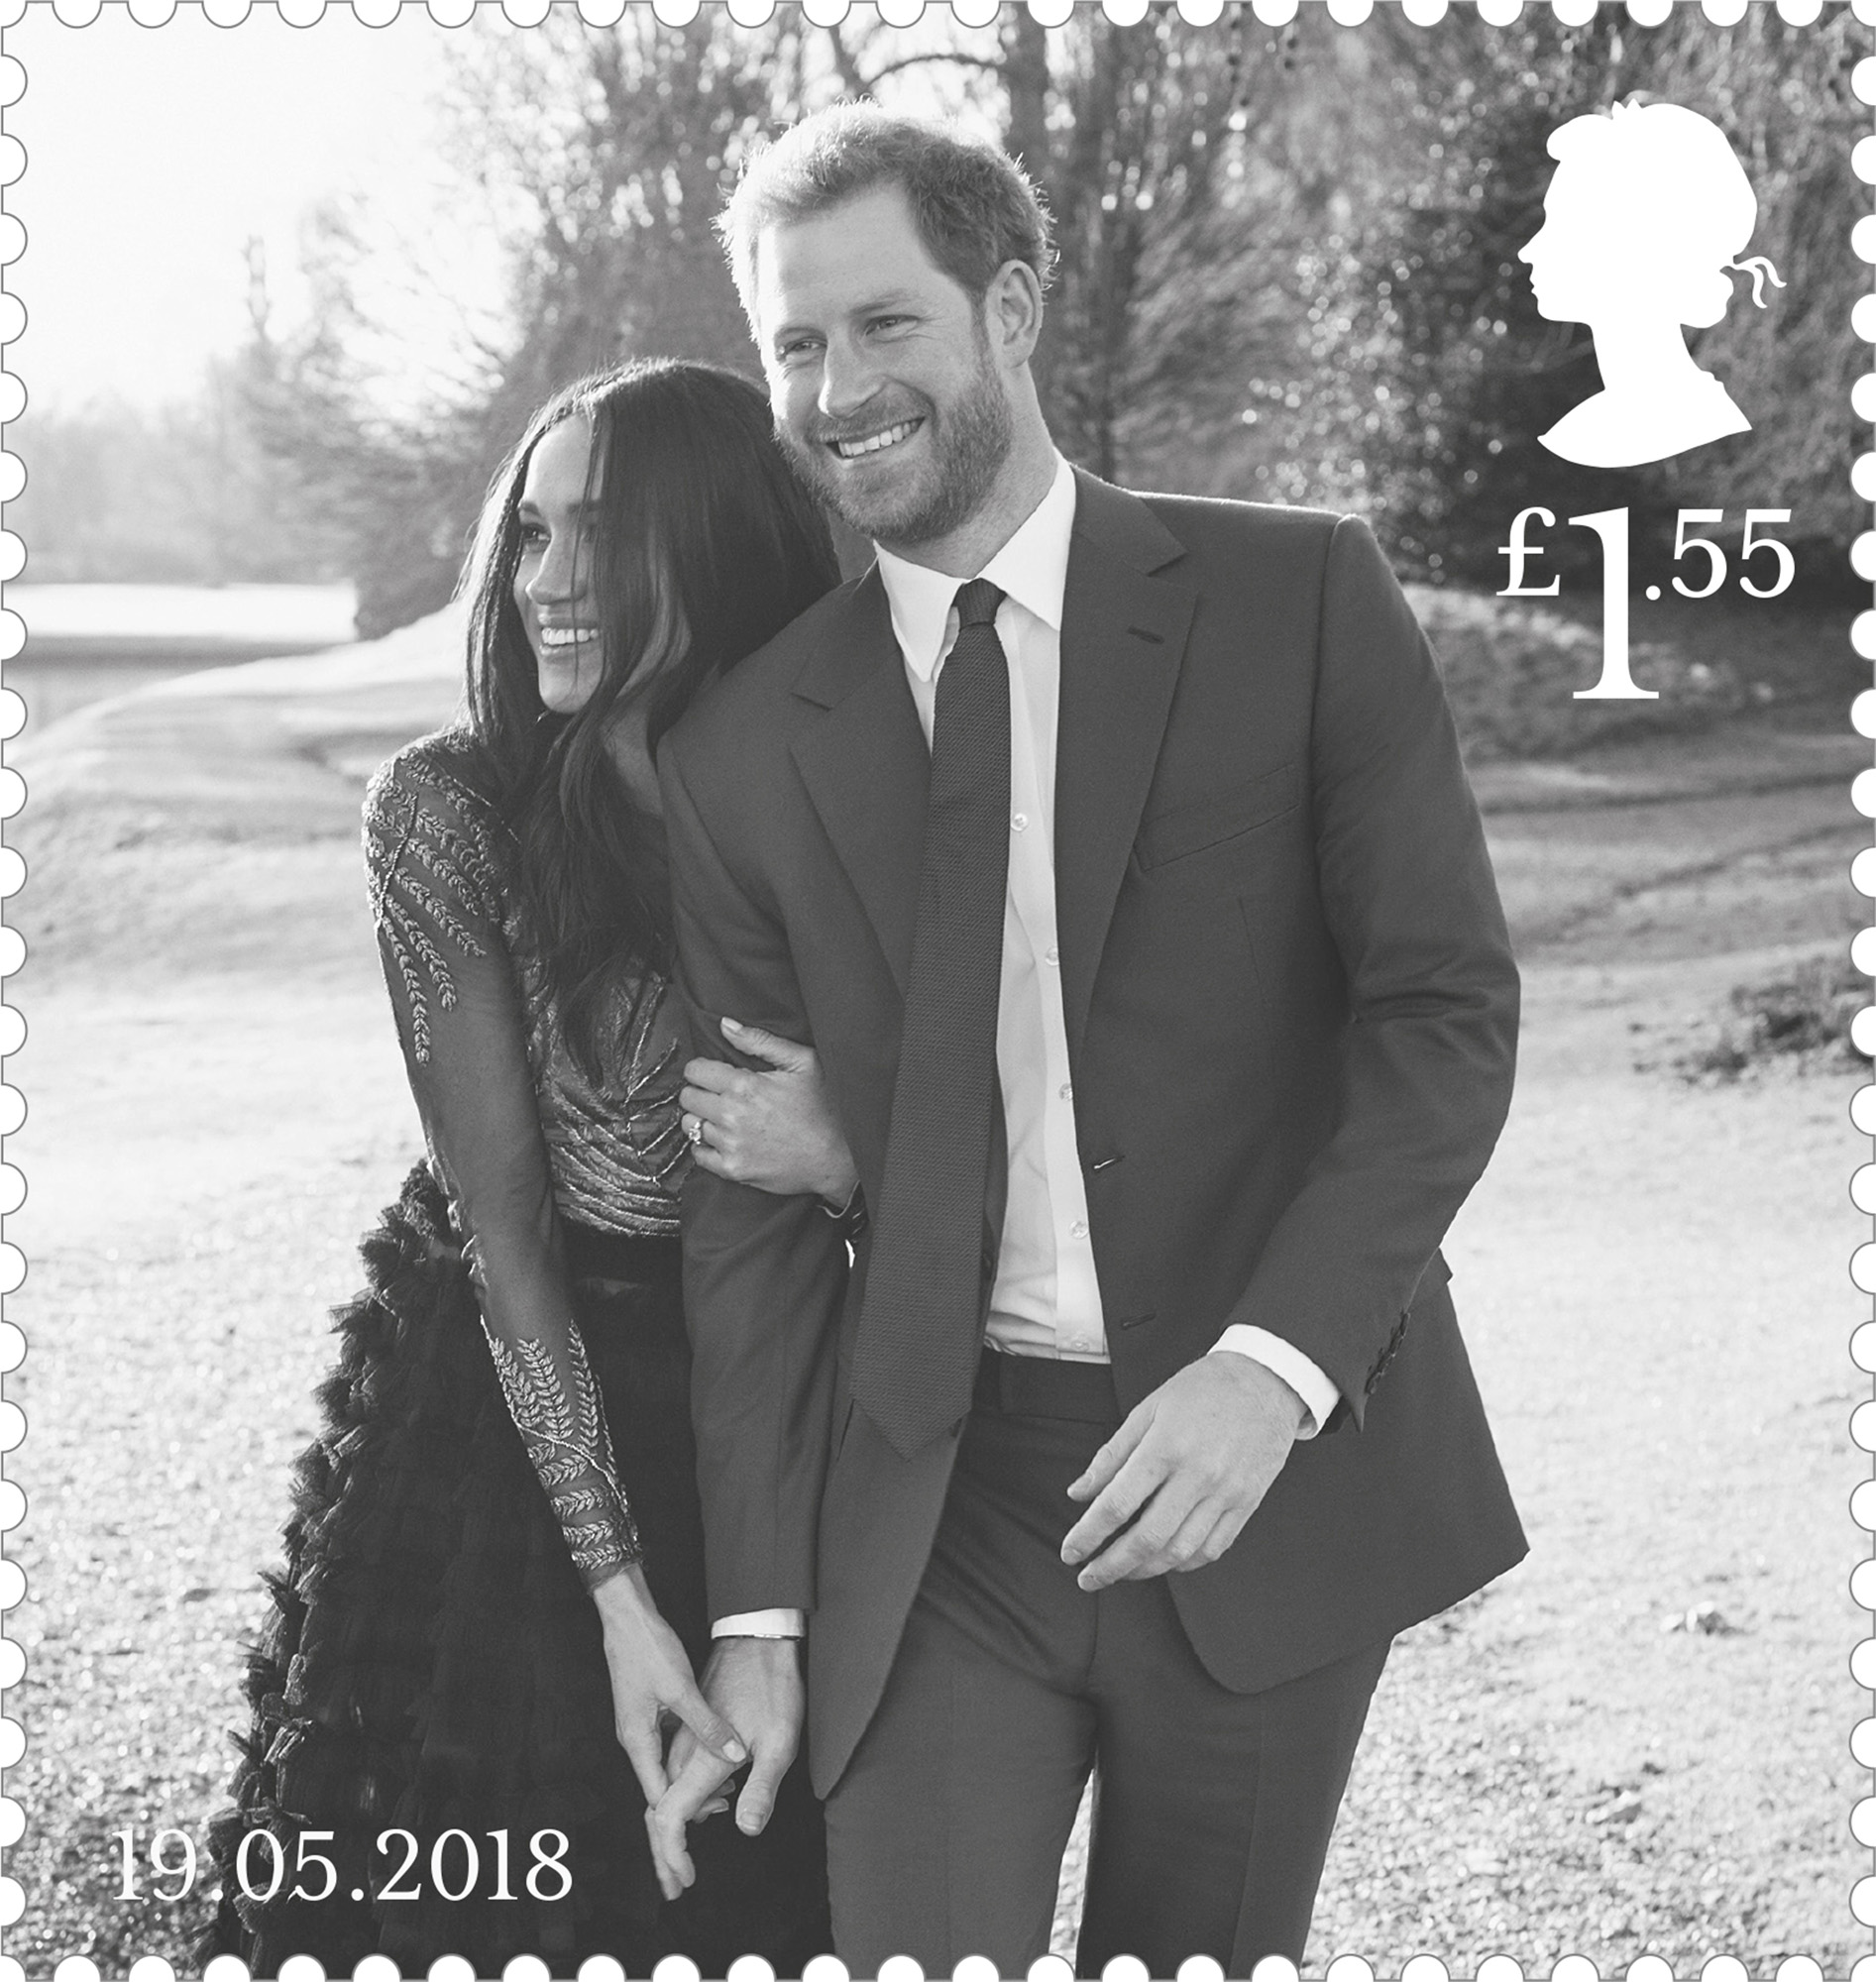 Prince Harry and Ms Meghan Markle £1.55 stamp